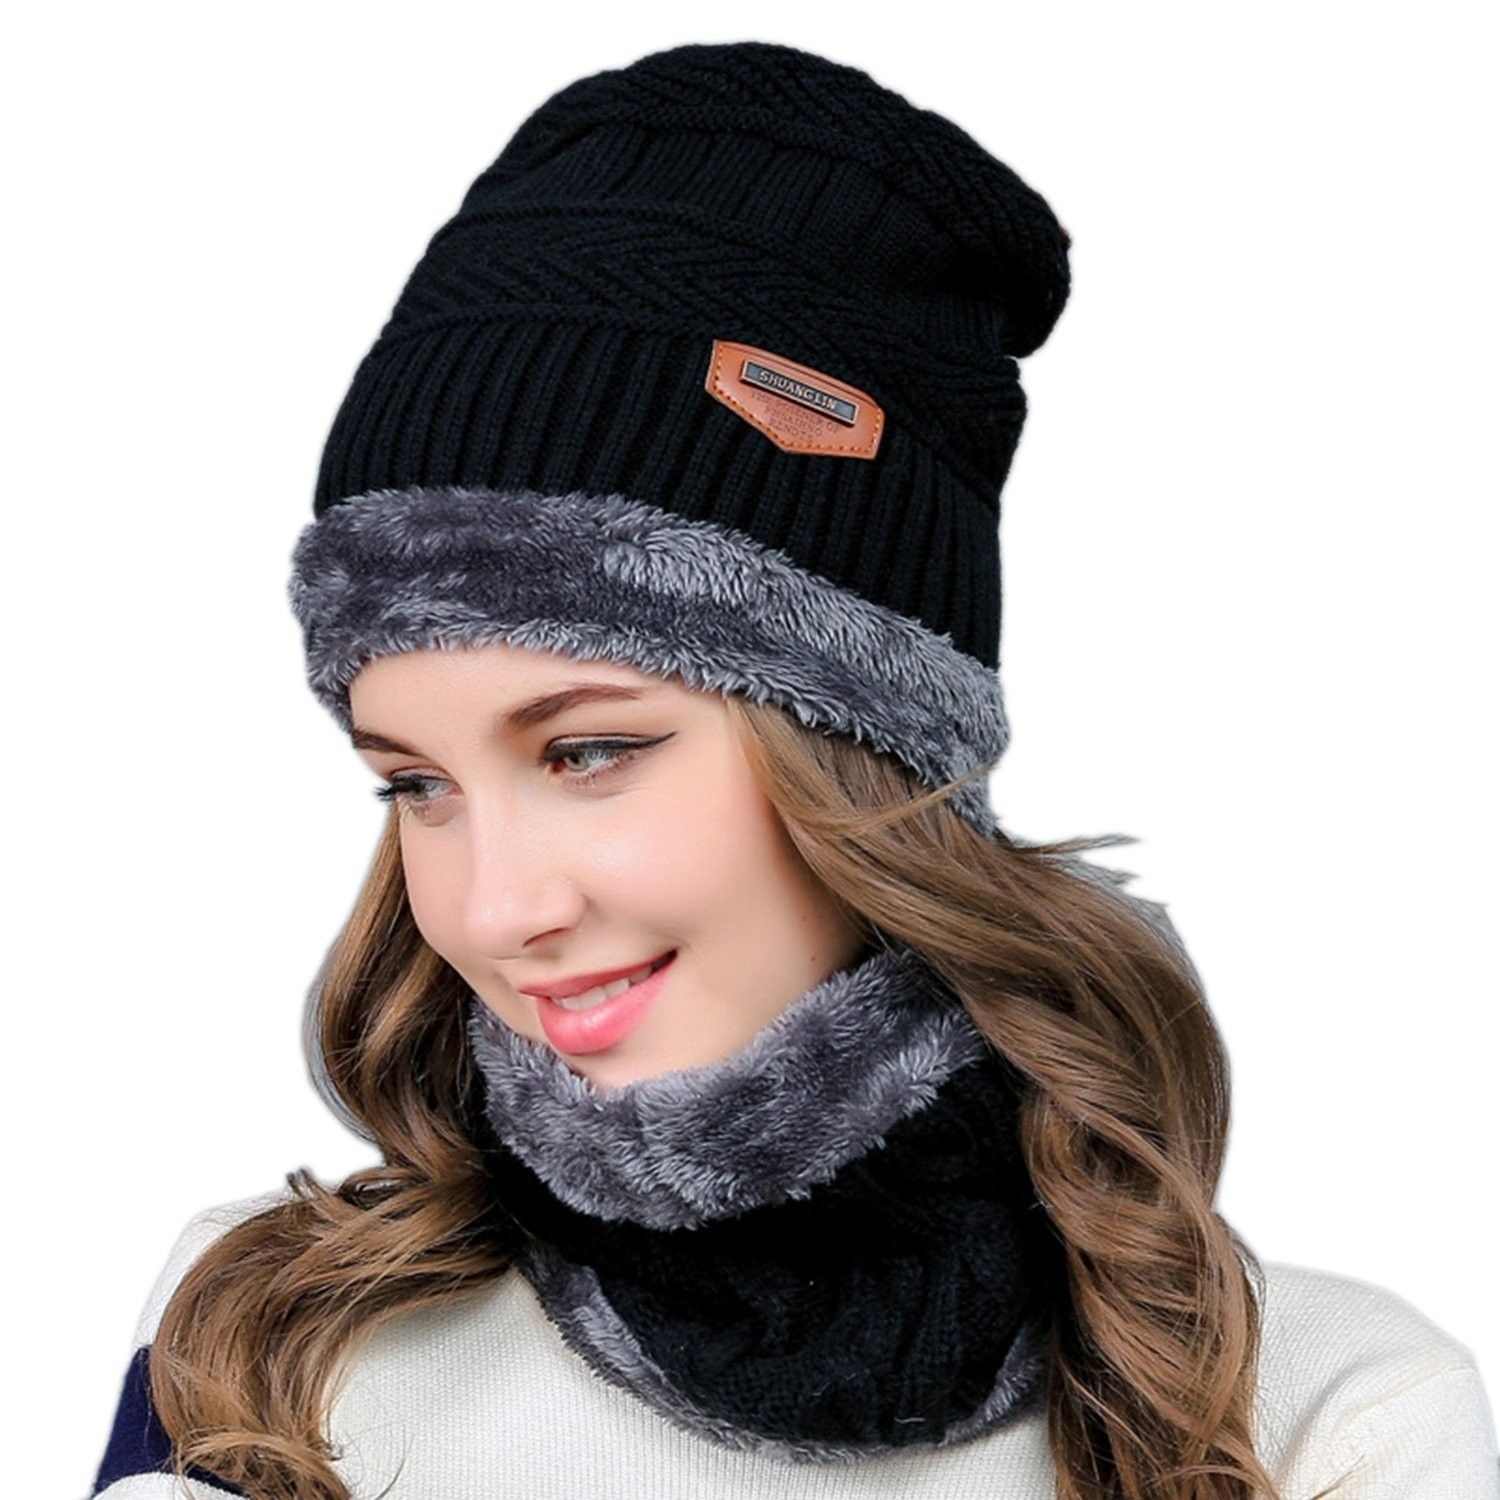 c998747a274 2-Pieces Winter Knit Hat and Circle Scarf with Fleece Lining- Warm Beanie  Cap for Women - Black - CP186XYSLIO - Hats   Caps